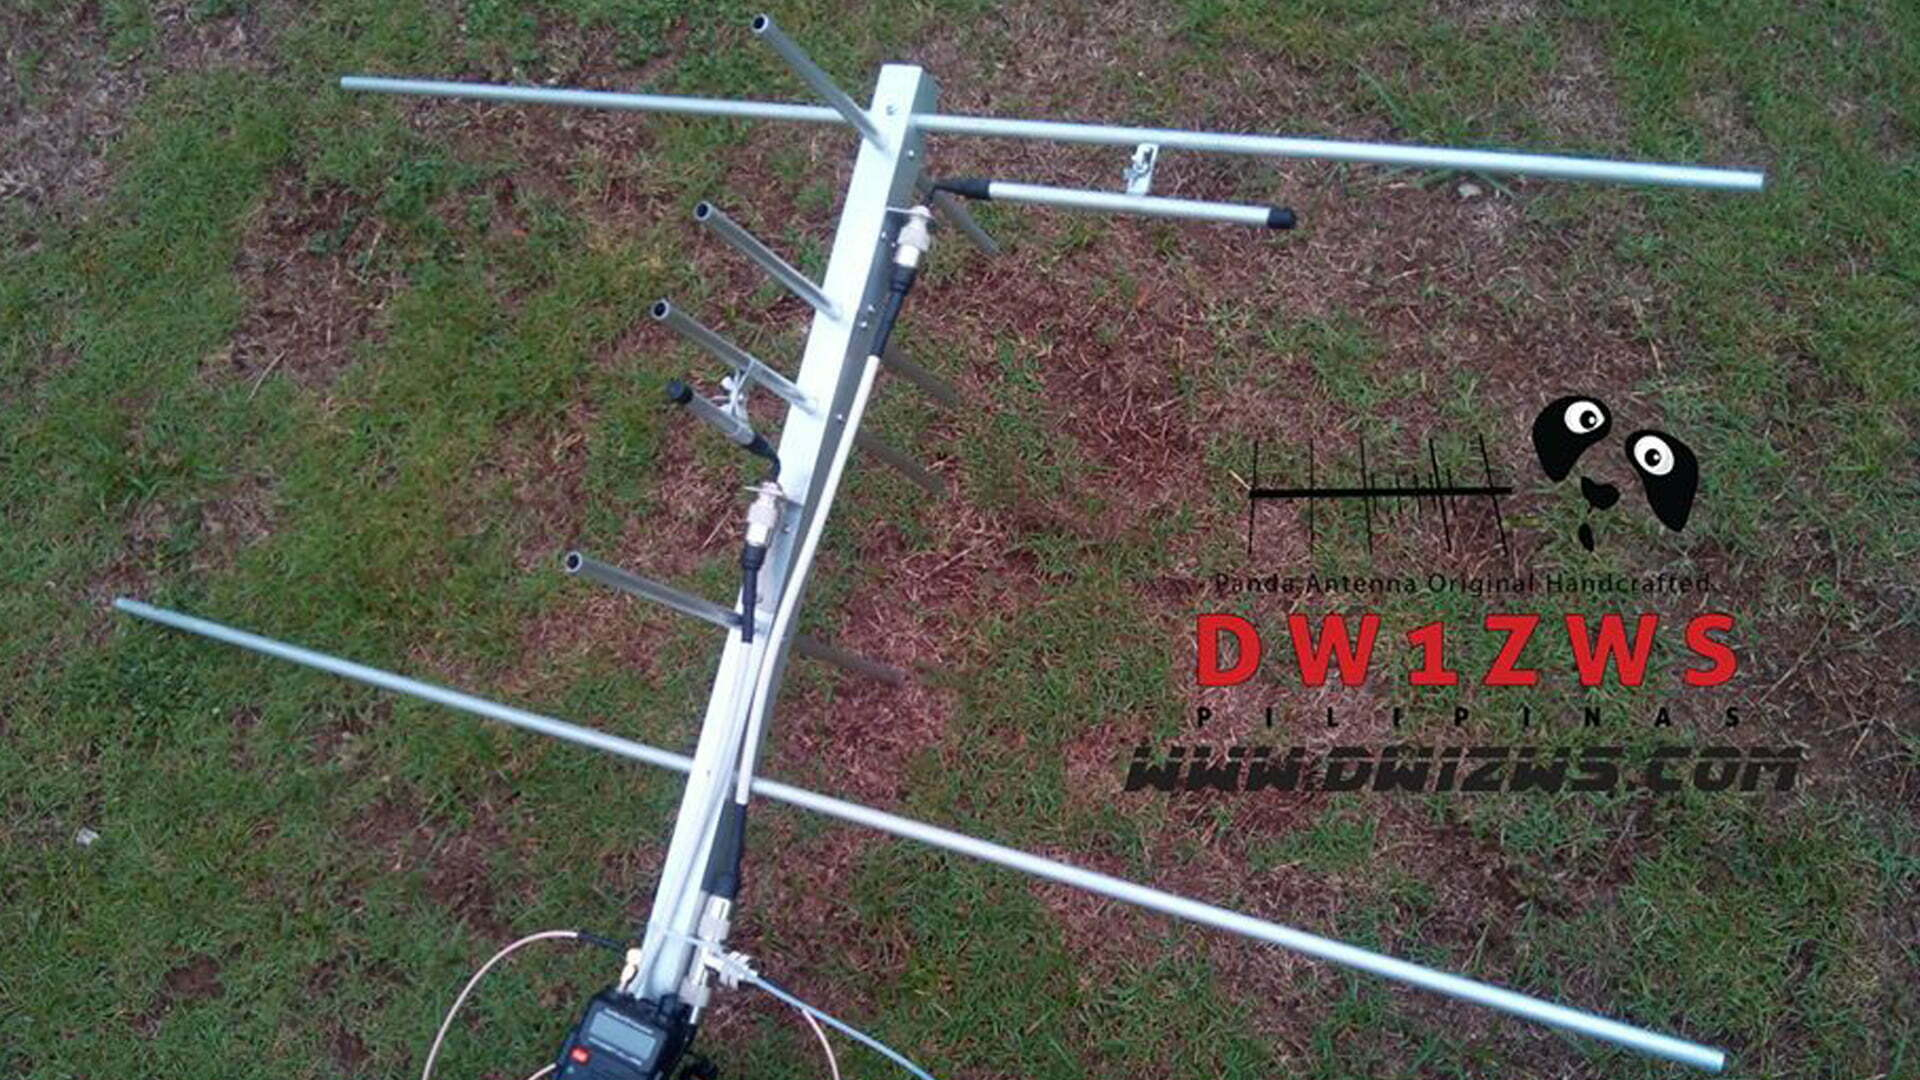 2x4 Cross Yagi Antenna